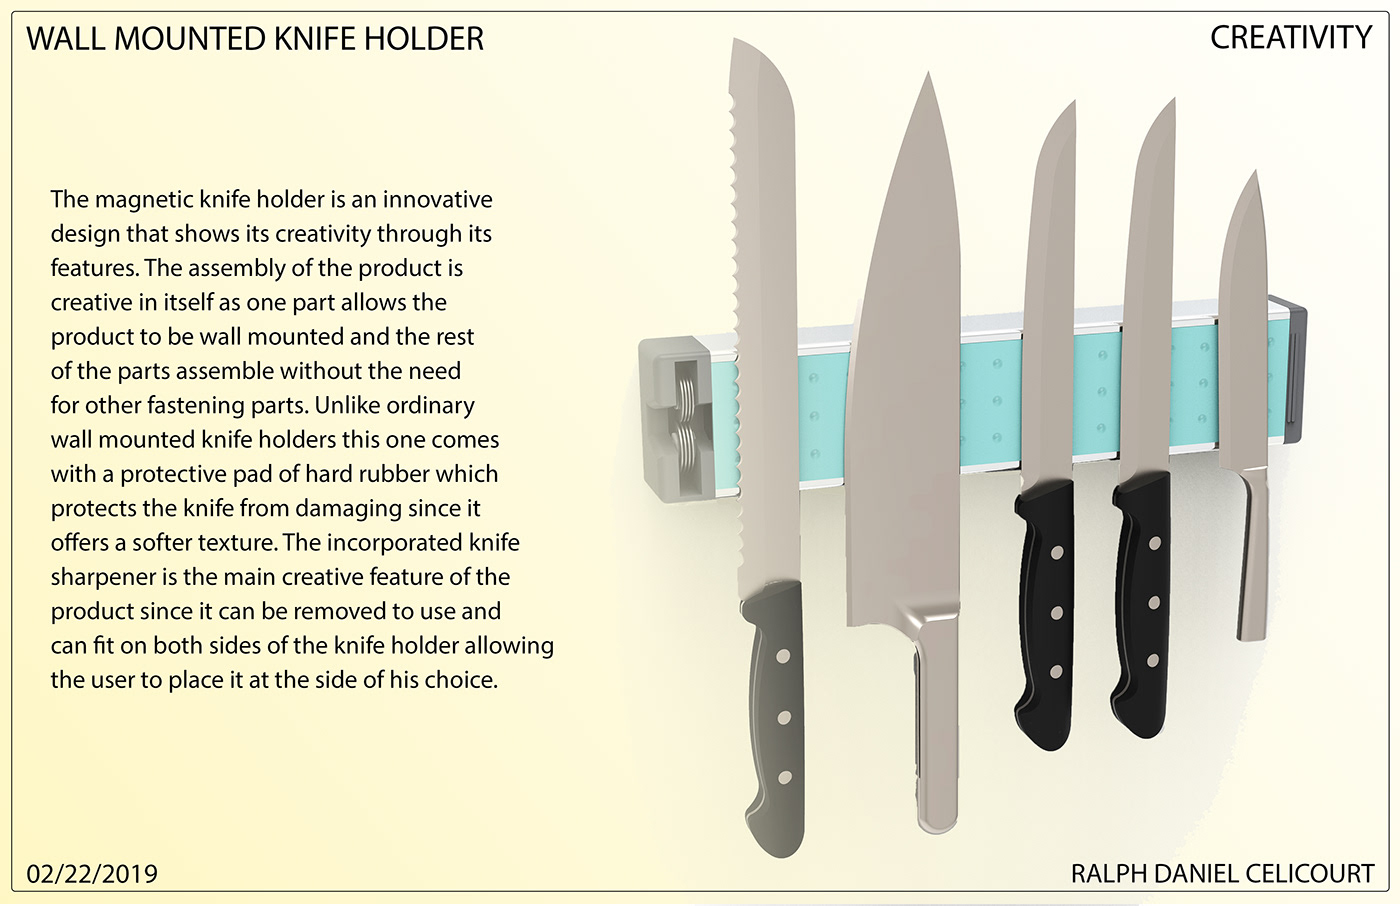 Wall Mounted Magnetic Knife Holder knife holder alluminum extruded industrial design  product design  innovaive product concept